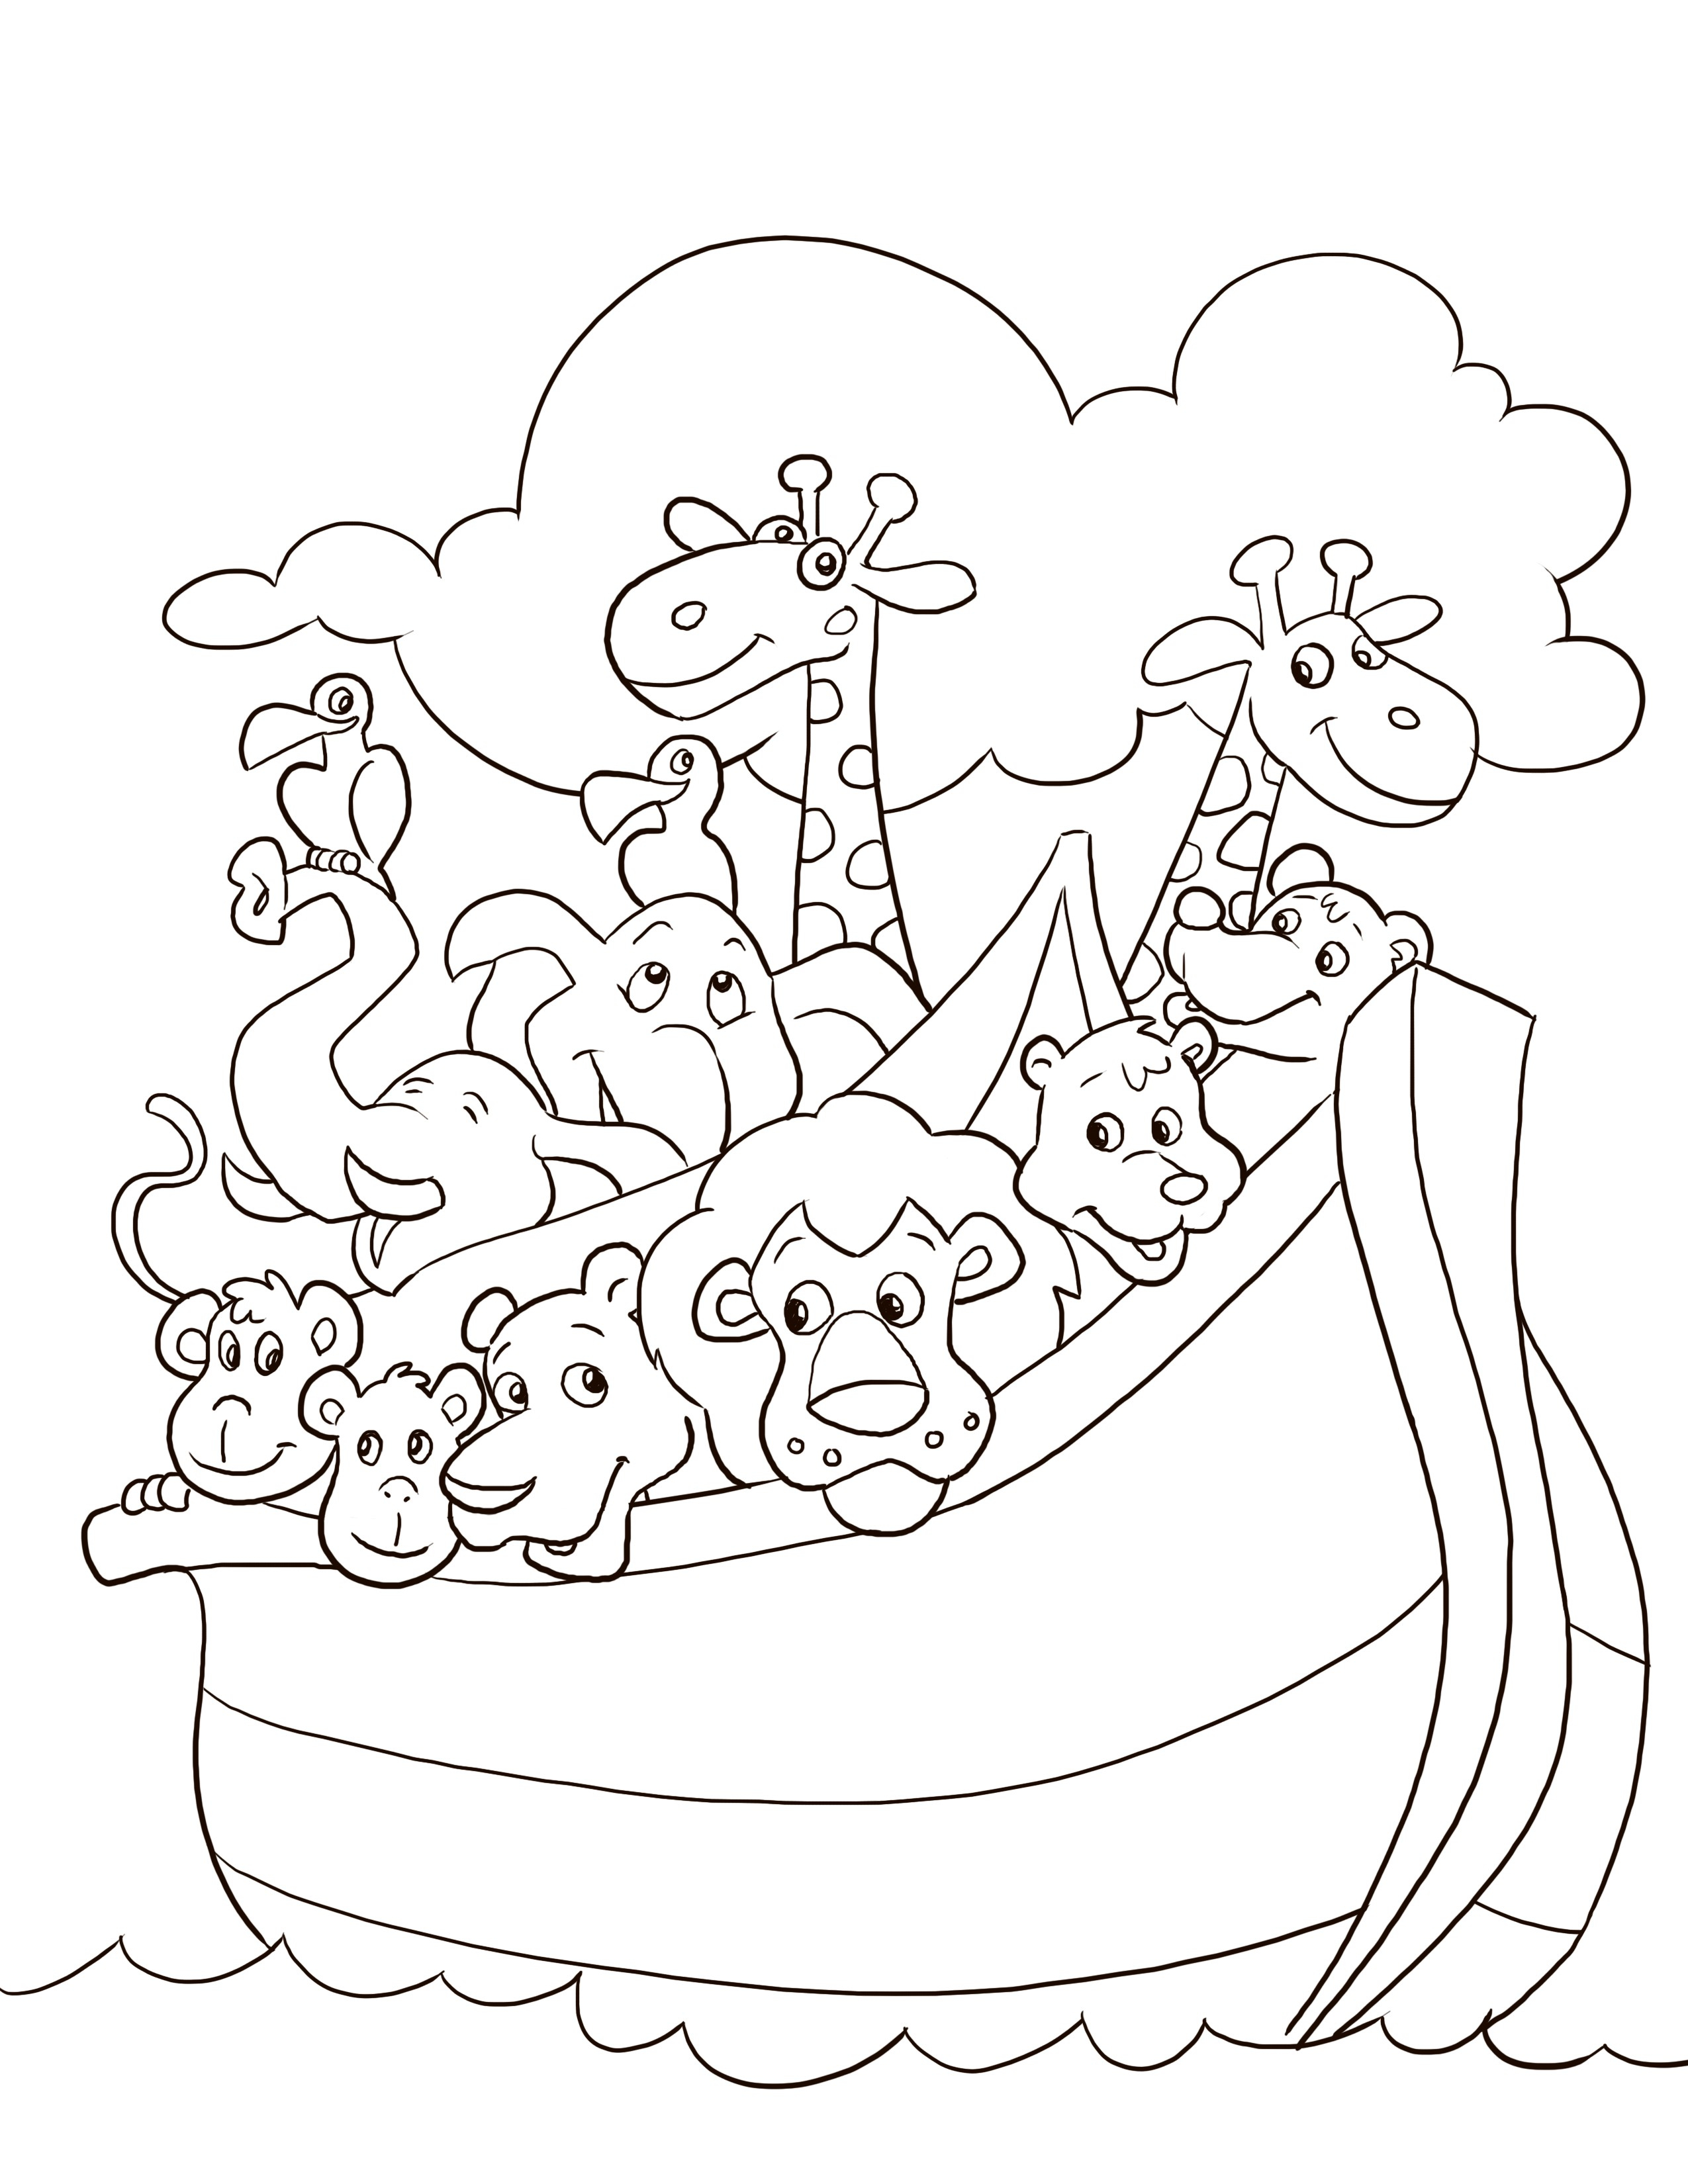 Religious Coloring Pages For Kids Coloring 45 Extraordinary Christian Coloring Books